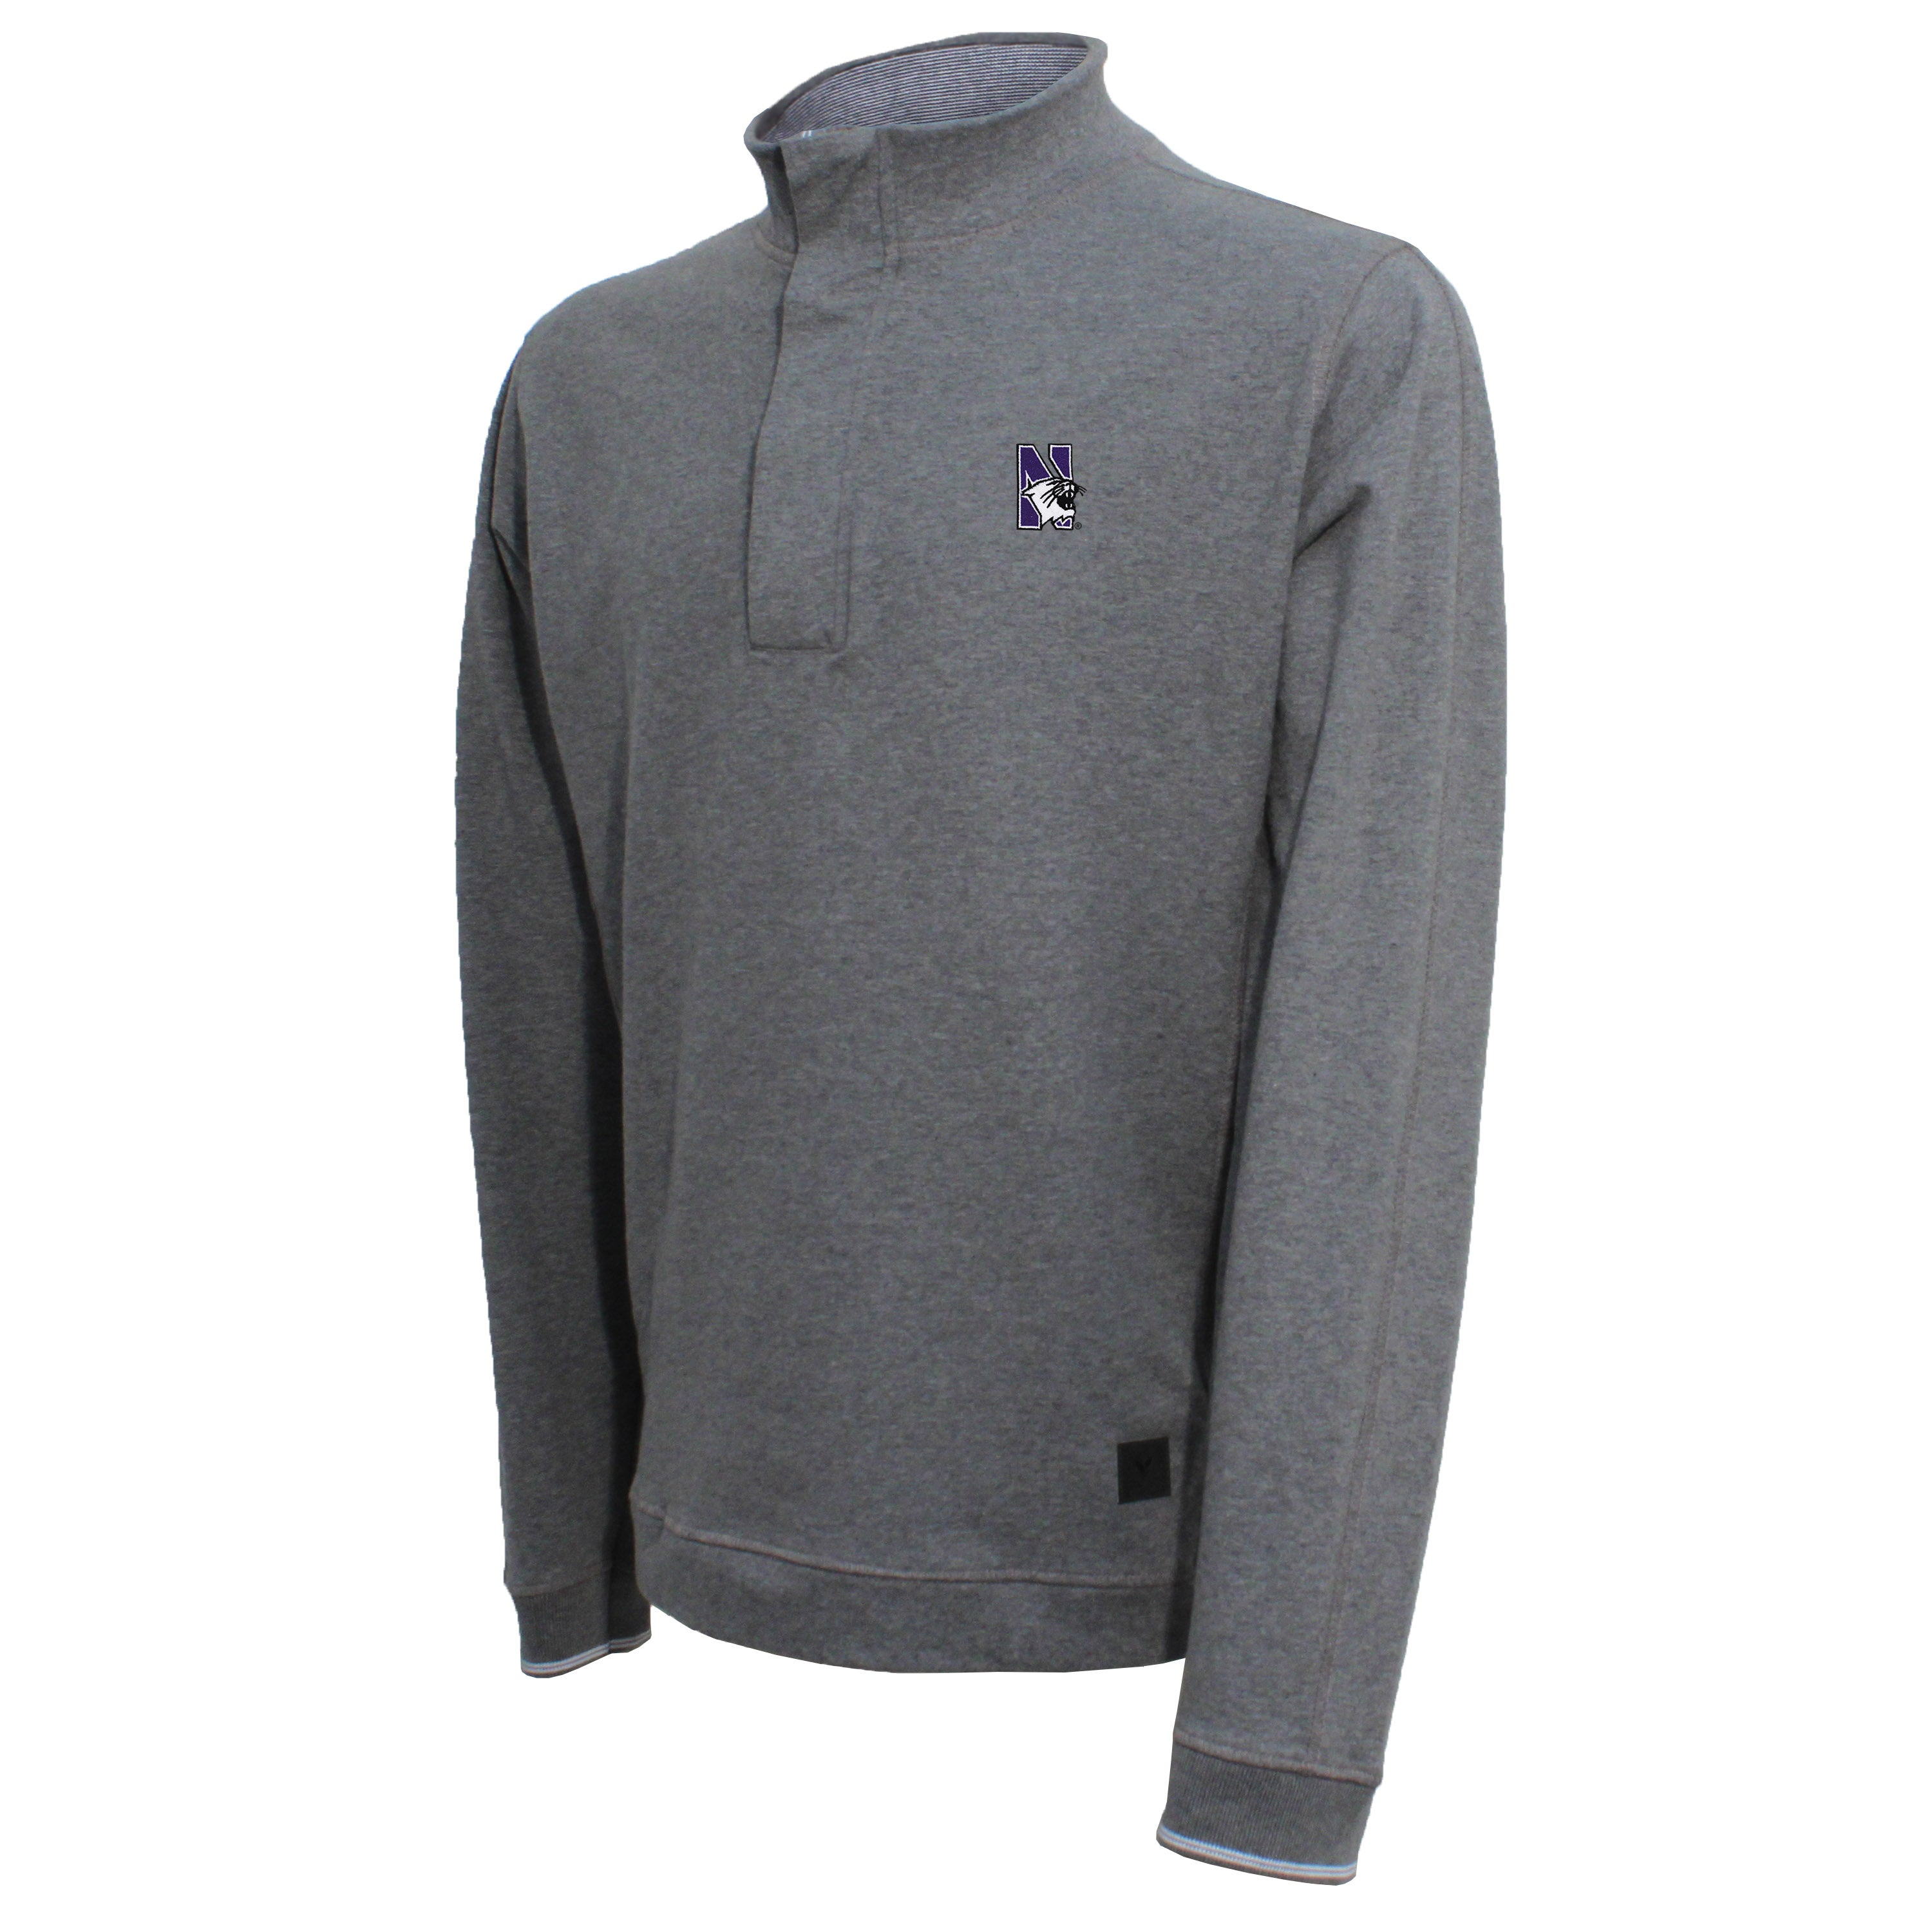 Vesi Northwestern Men's Gray Quarter Zip Pullover